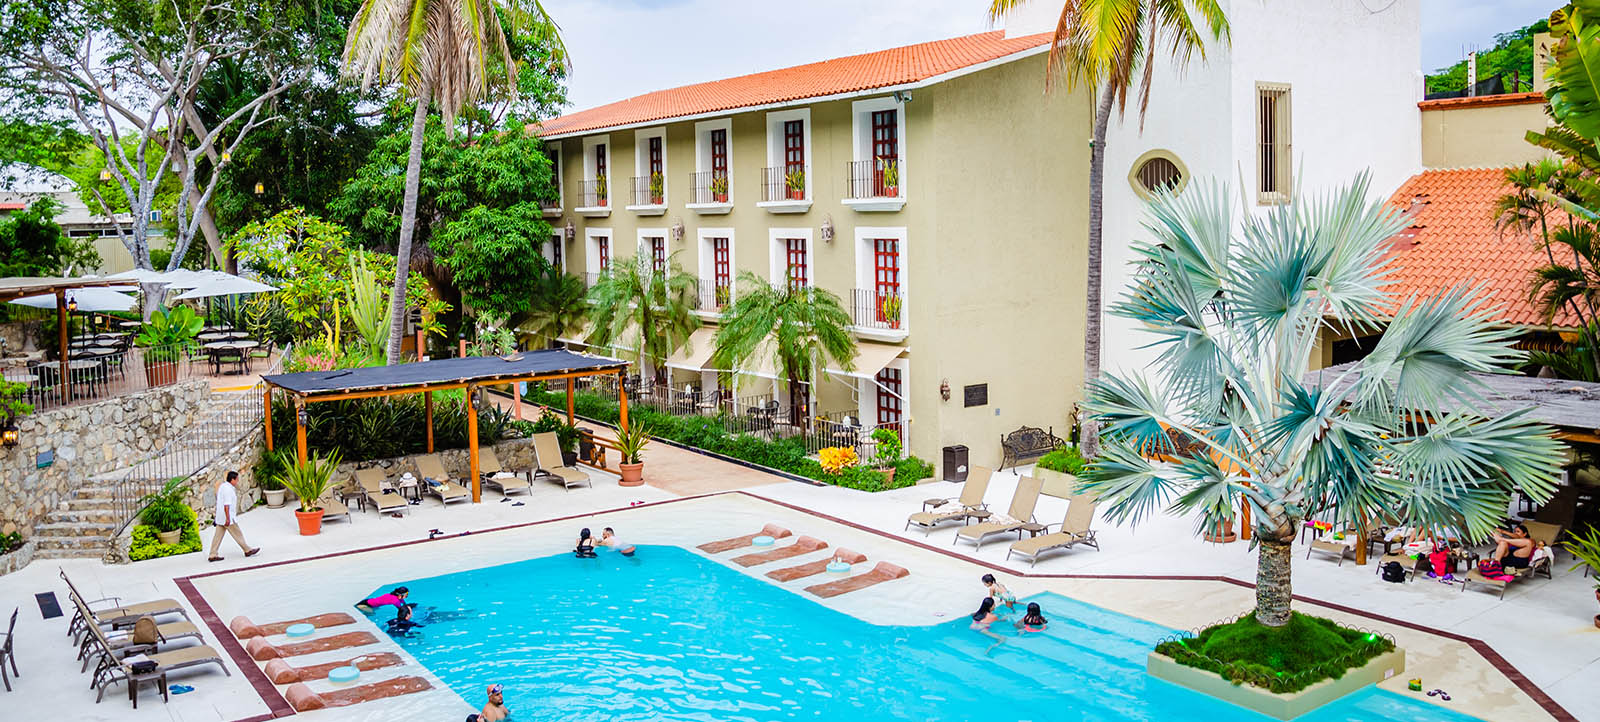 hotel binniguenda huatulco beach pool all inclusive room facilities